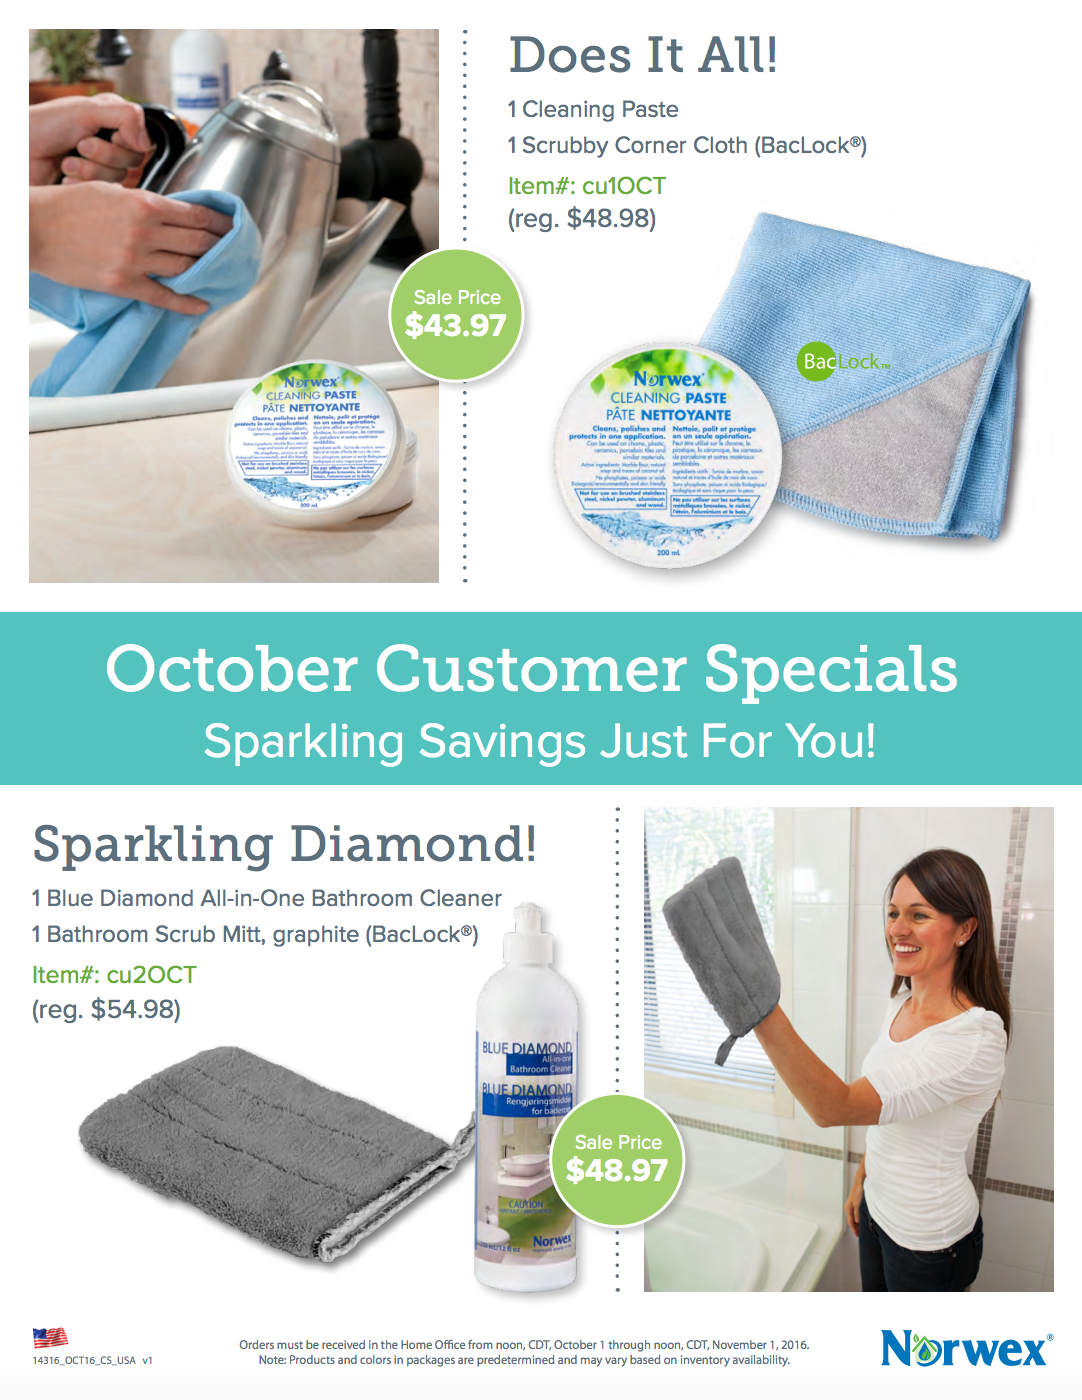 Norwex_Customer_Hostess_gifts_specials